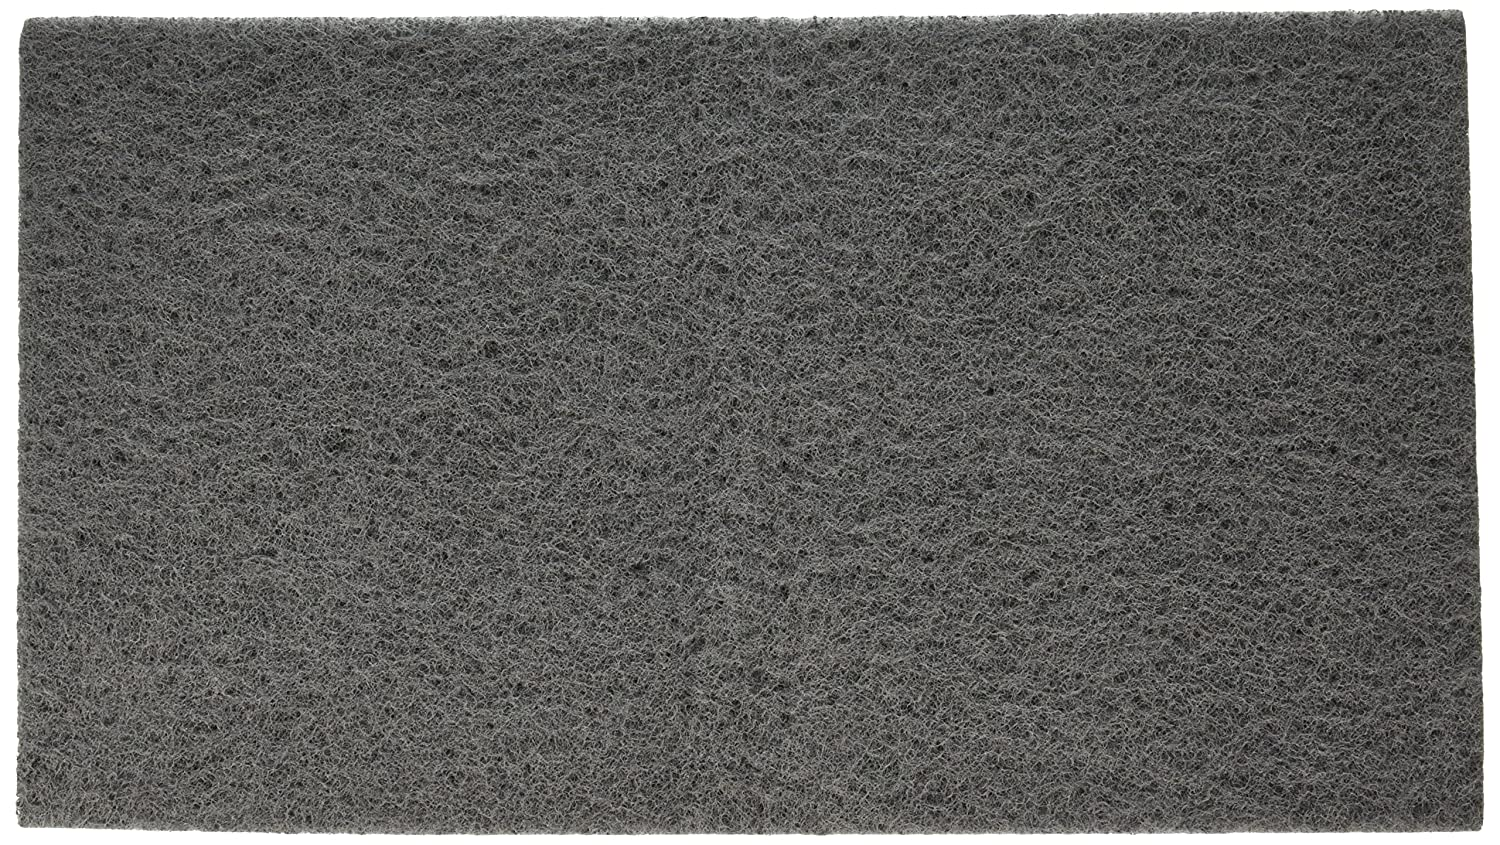 Penn-Plax Nitrate Remover Infused Filter Media Pad, 18 by 10-Inch